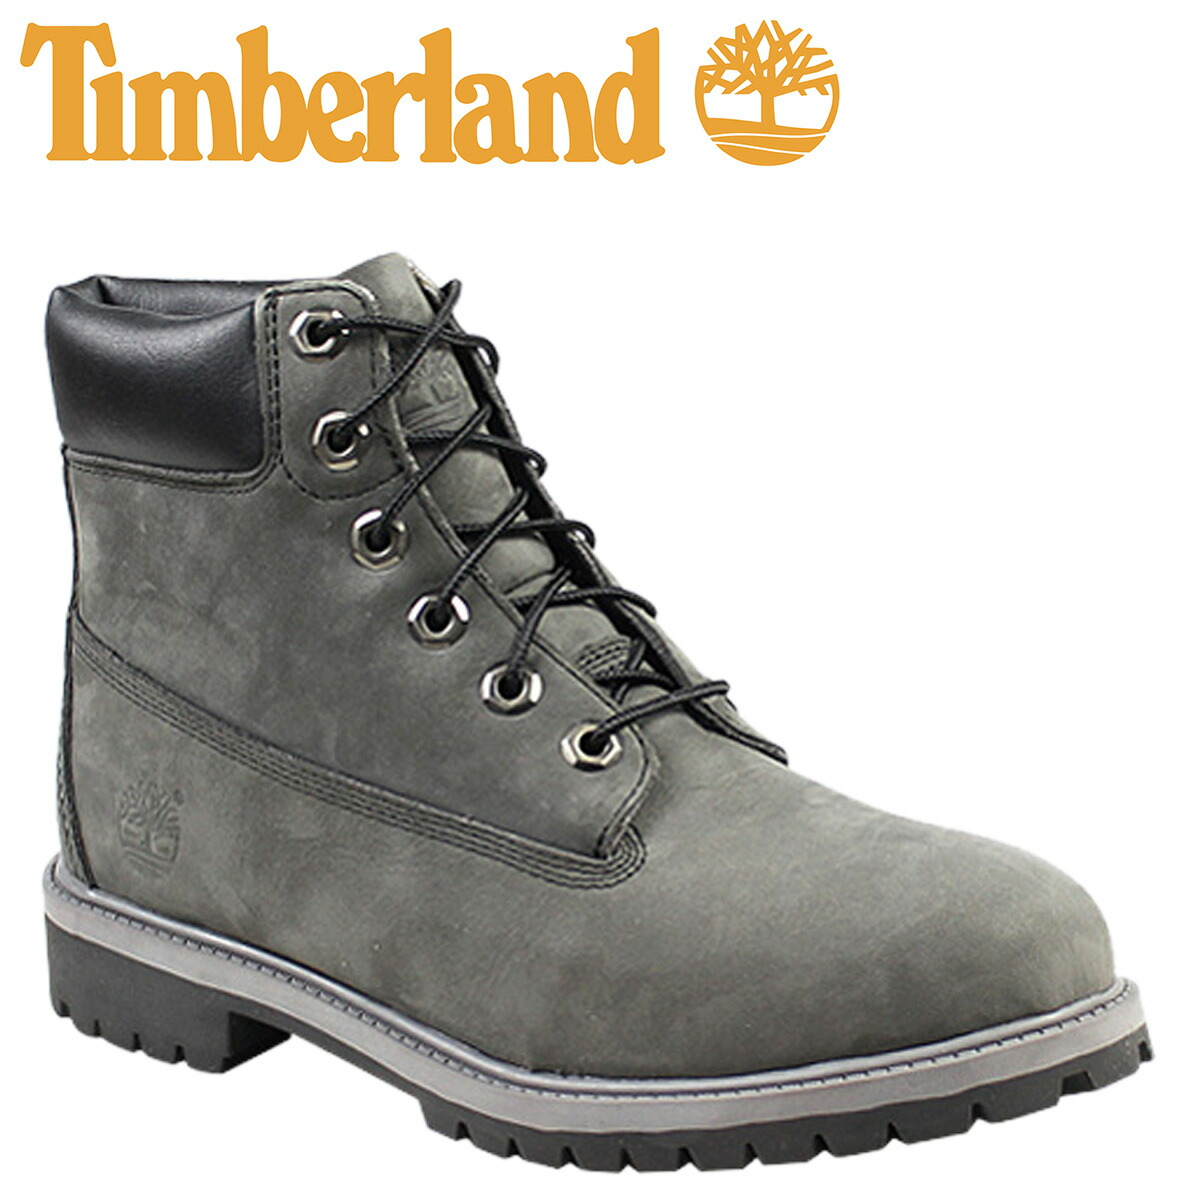 Timberland Boots Womens Grey mrtomkeeley.co.uk b560b1af6347